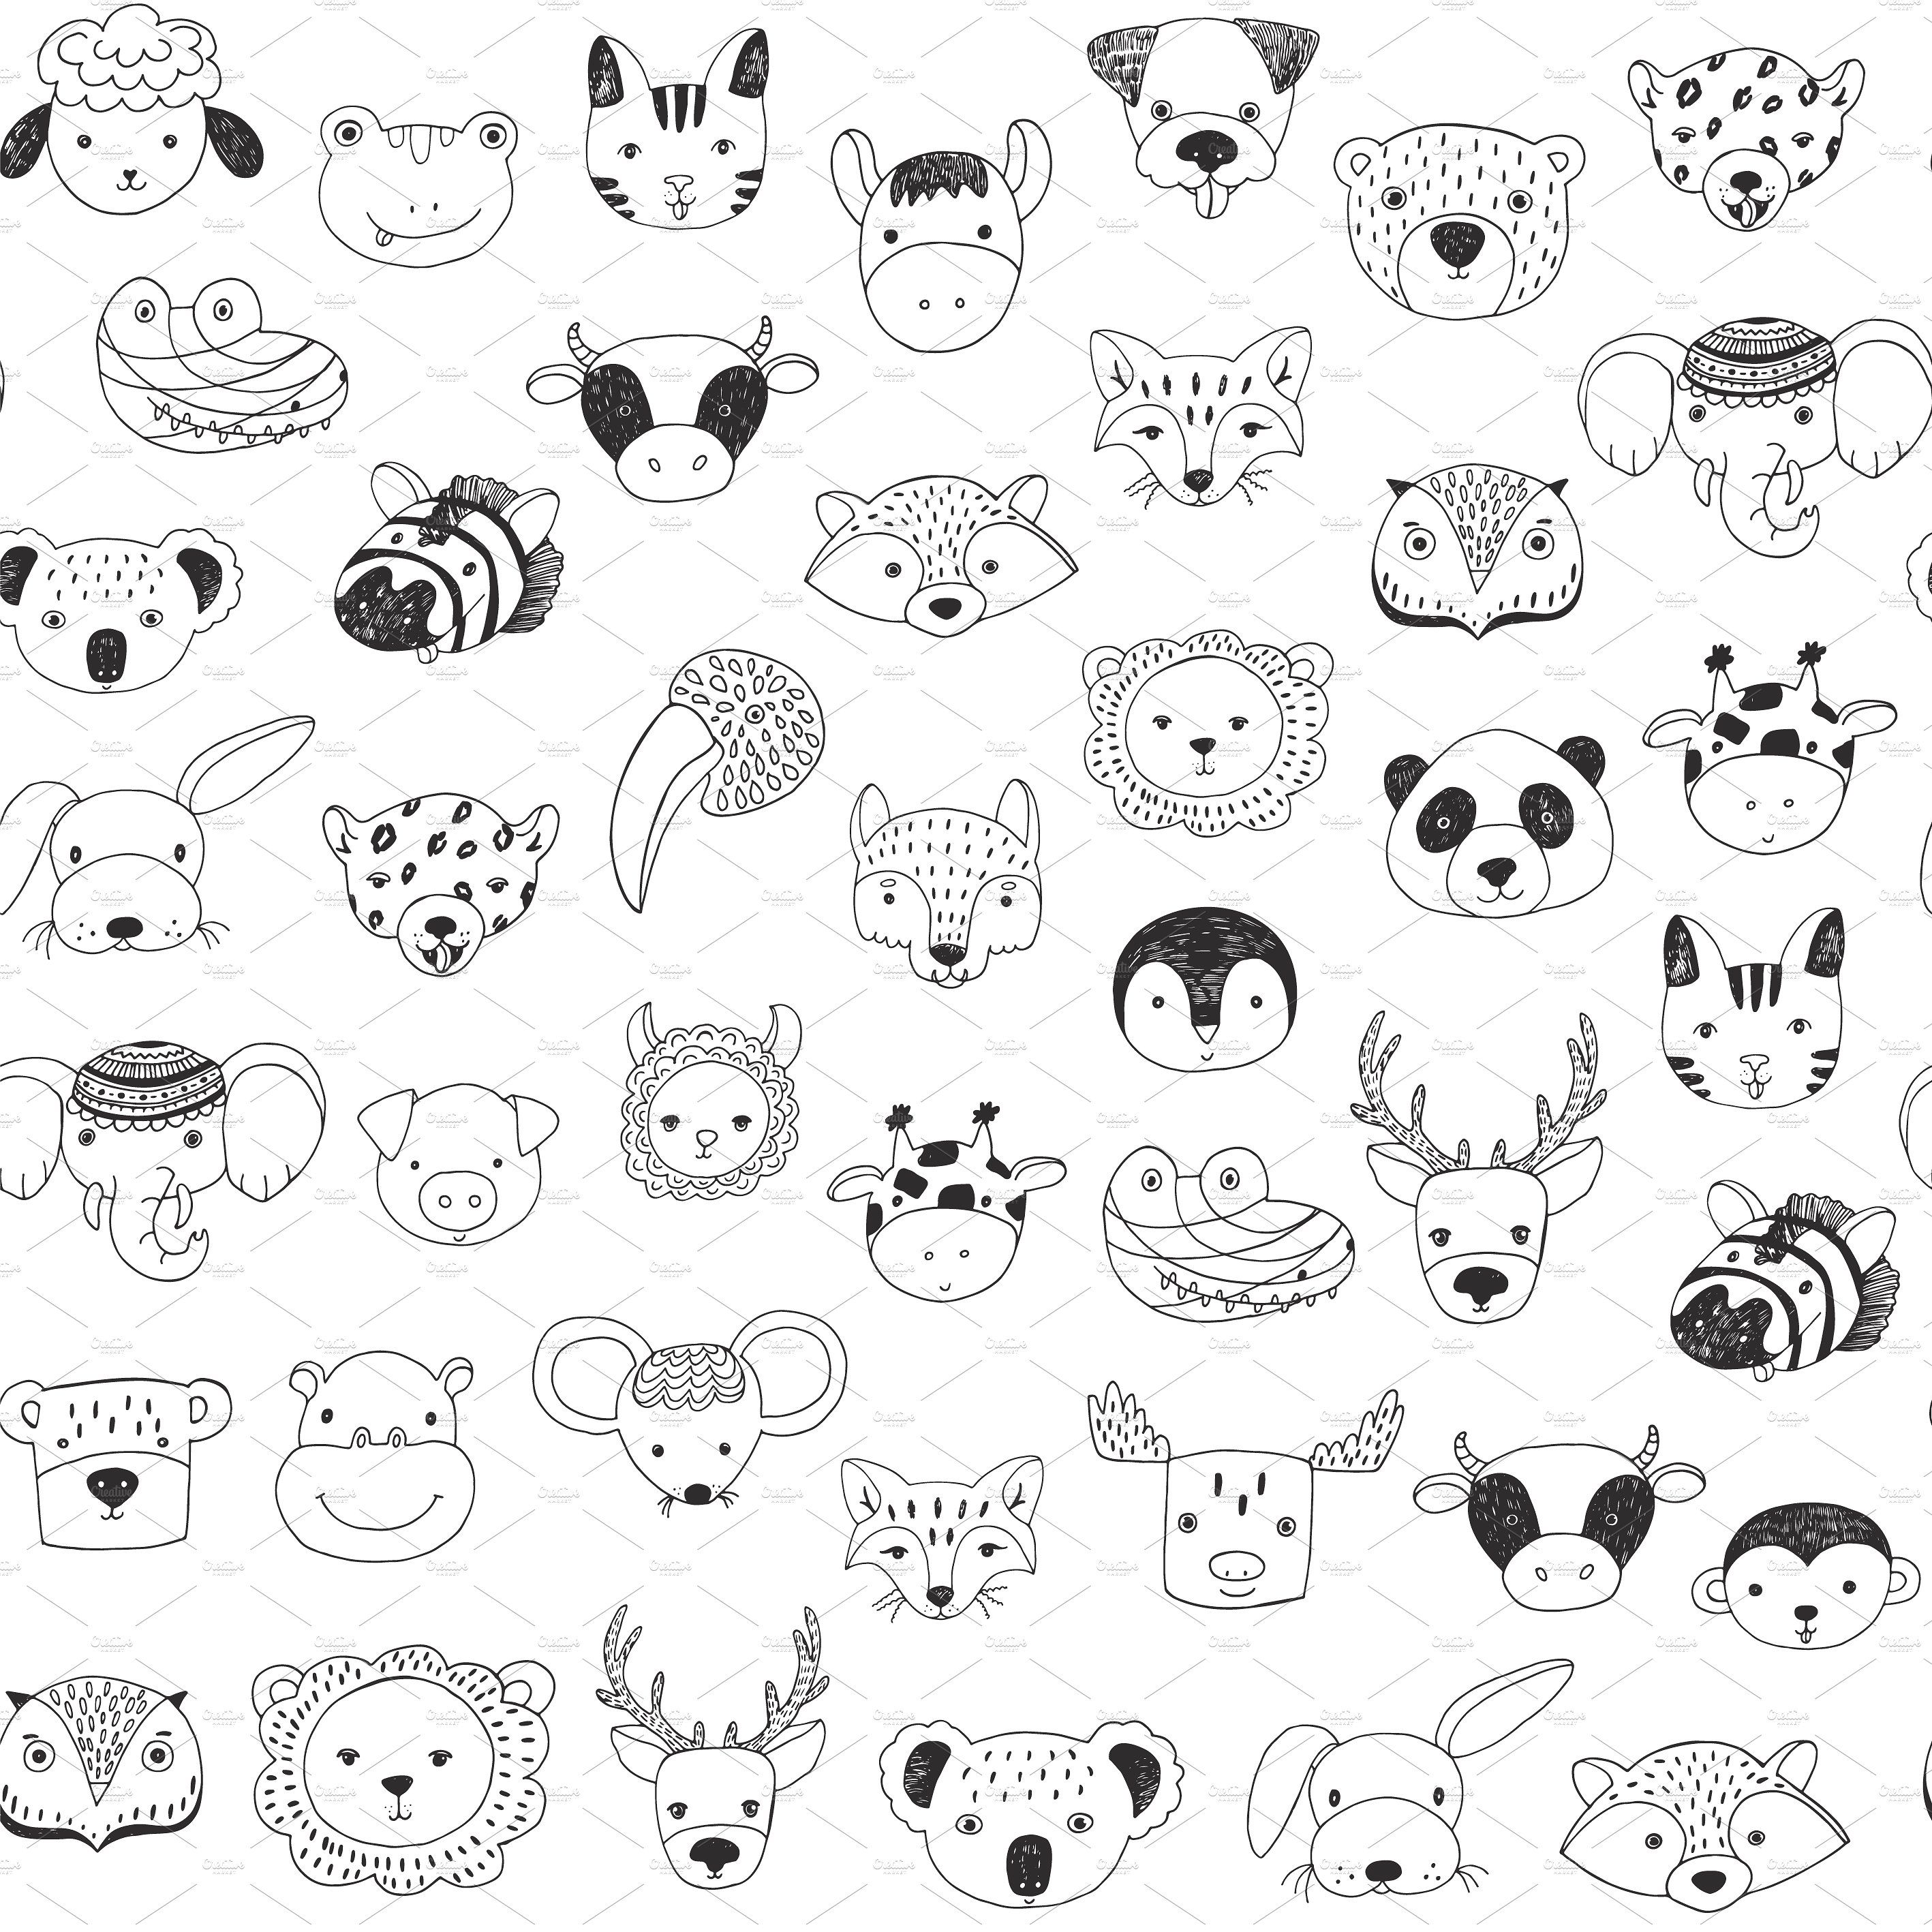 Animal Faces In Trendy Glasses Animal Doodles Baby Animal Drawings Doodle Illustration